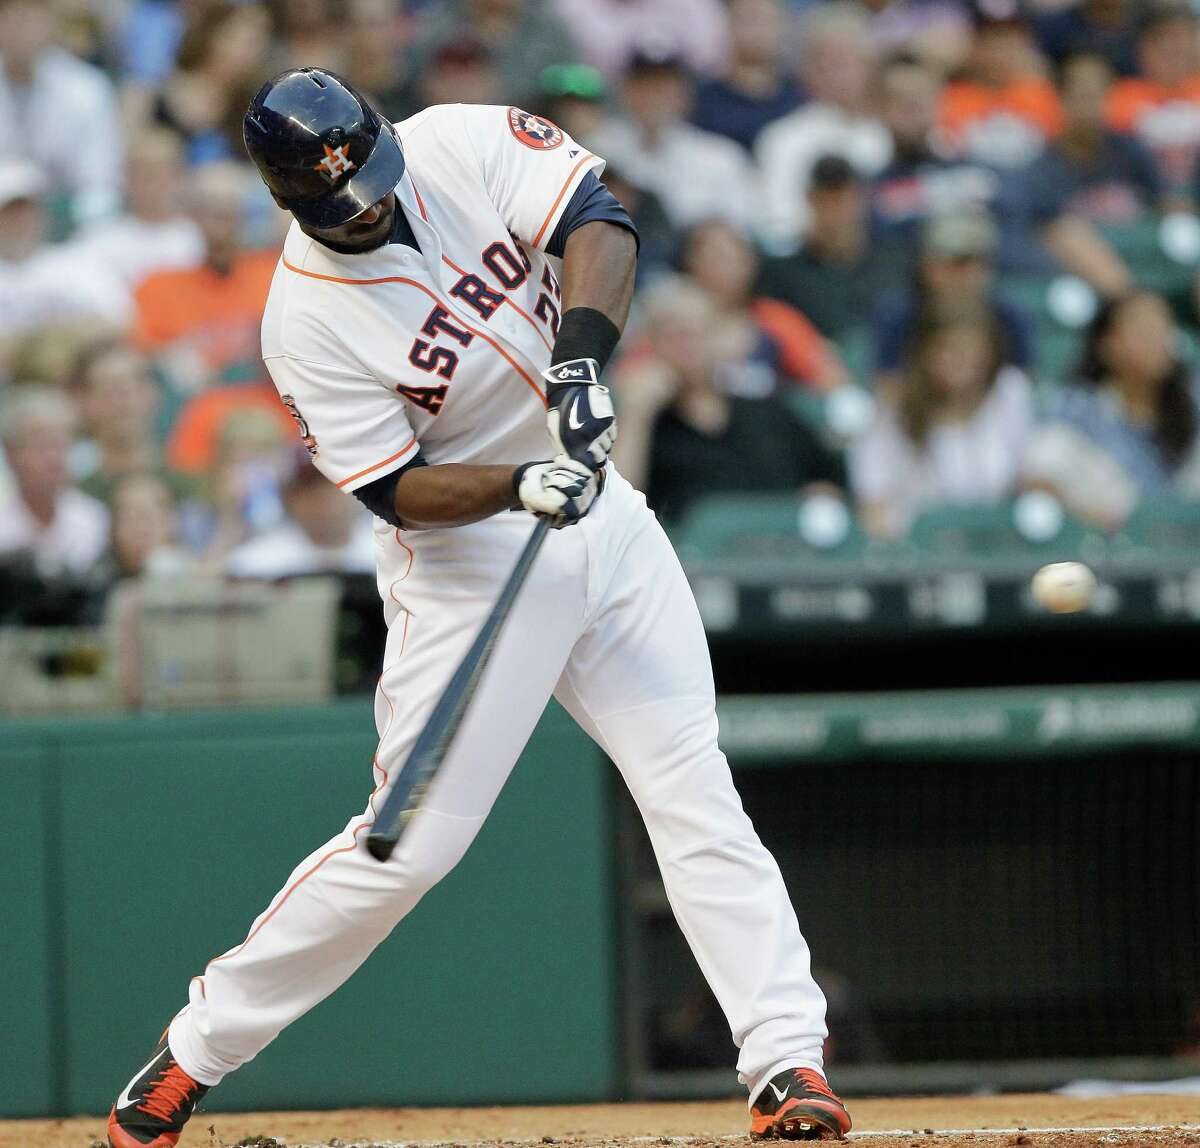 Chris Carter's swing creates the lift that sent the ball flying out of the park in the second inning, the first of his two bases-empty home runs.